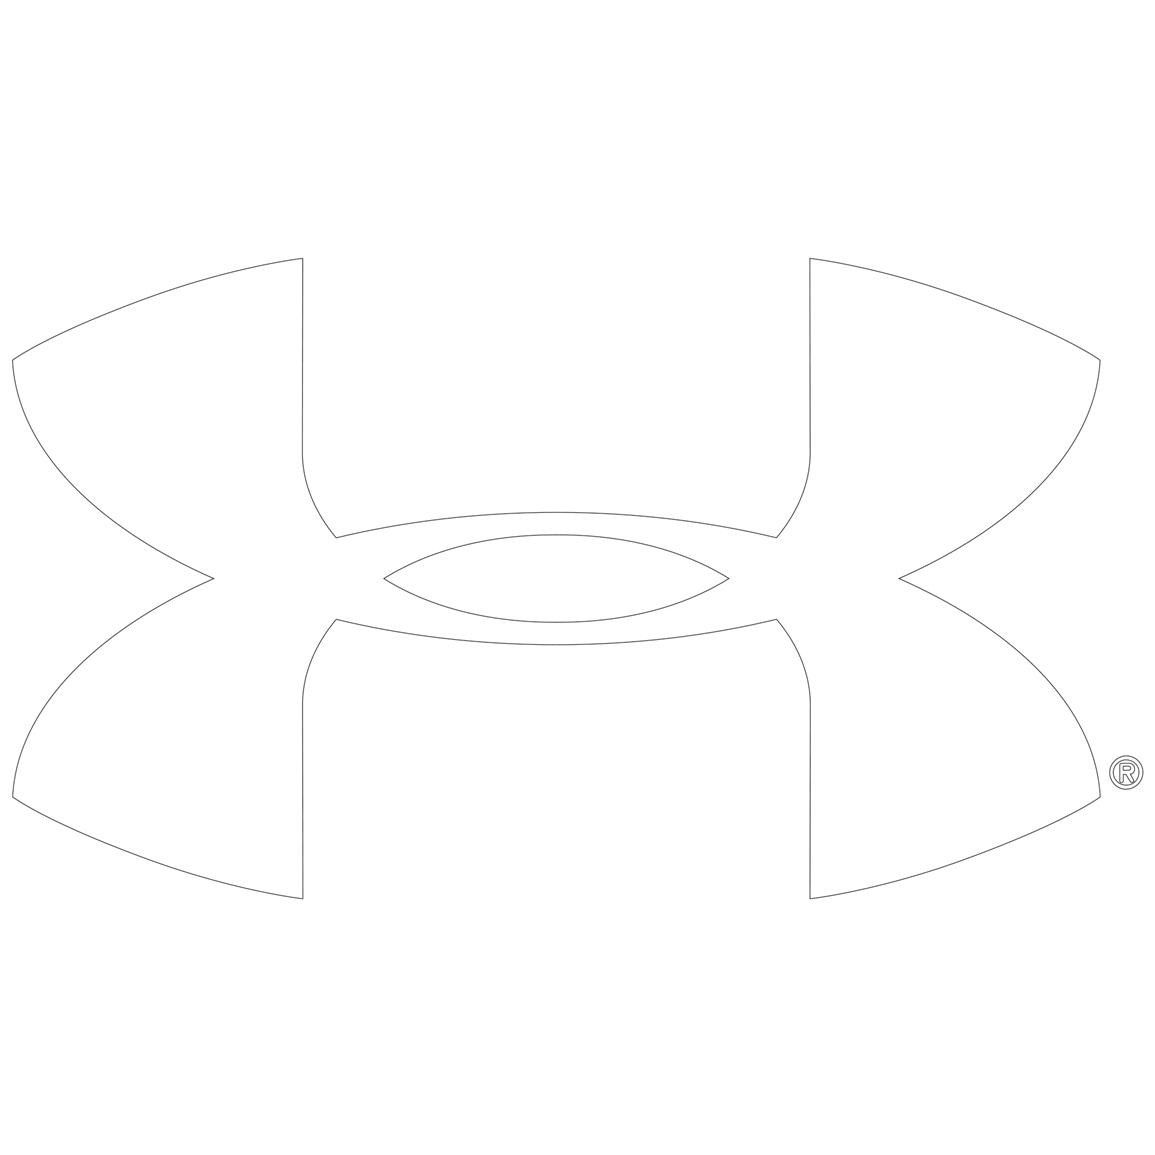 Under armour white clipart svg library stock Free Under Armour Cliparts, Download Free Clip Art, Free ... svg library stock